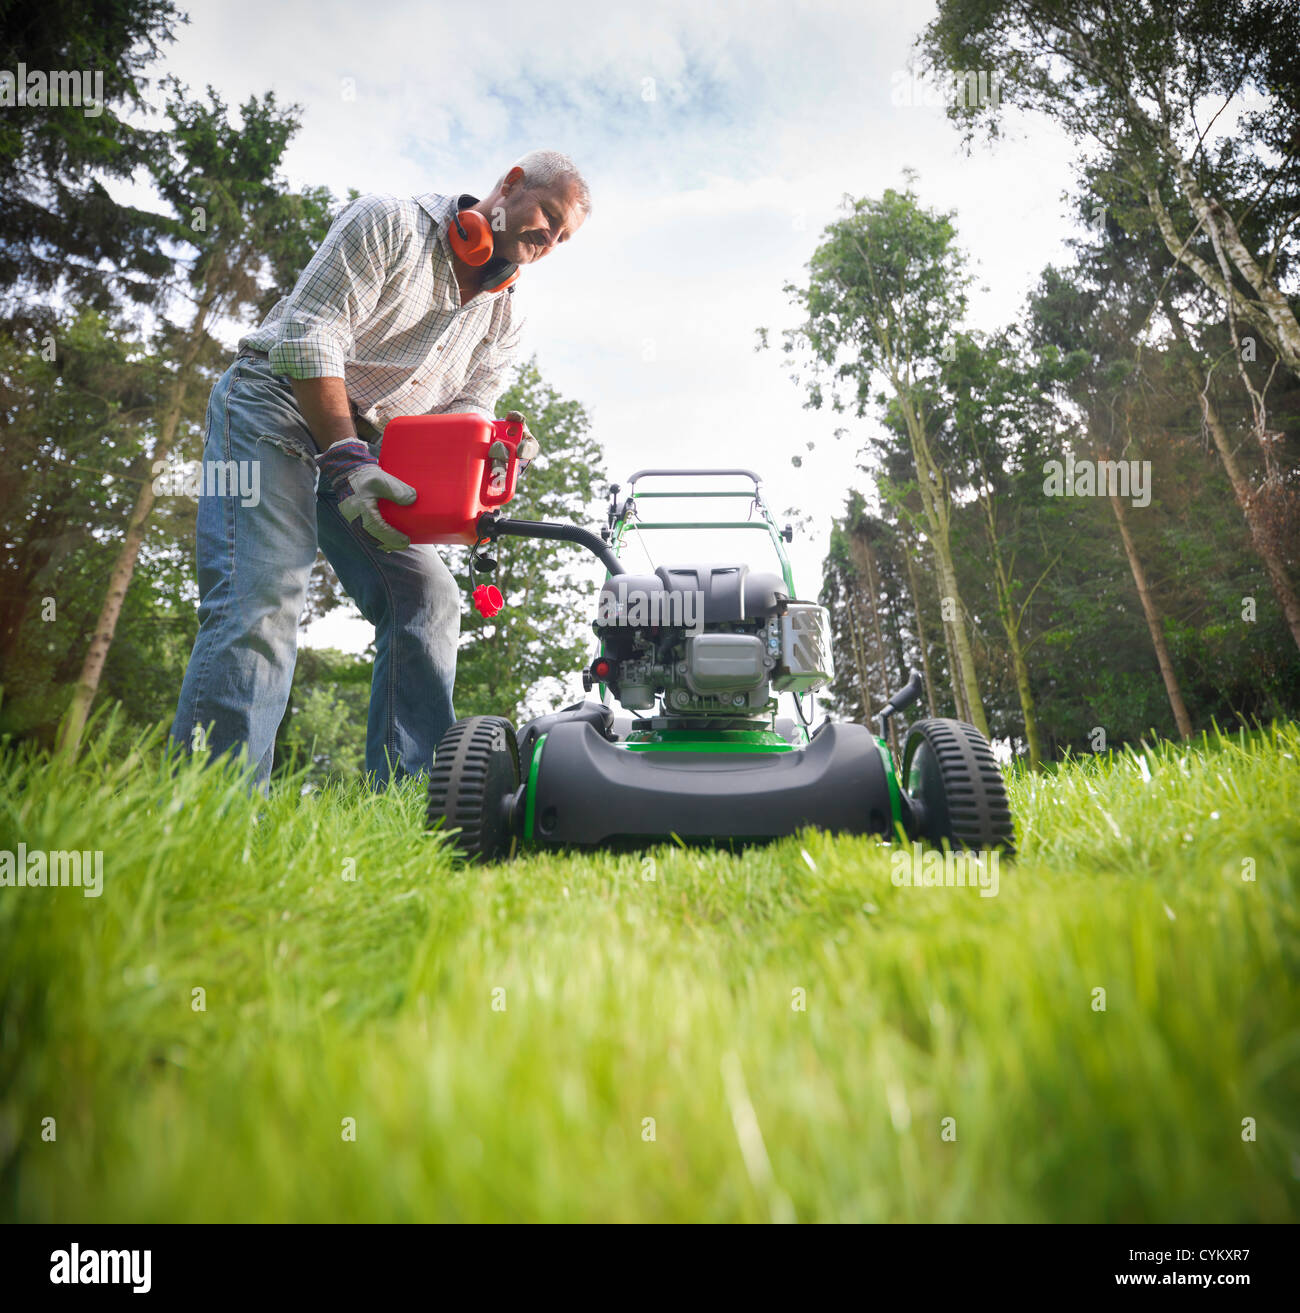 Man pouring gas into lawn mower - Stock Image